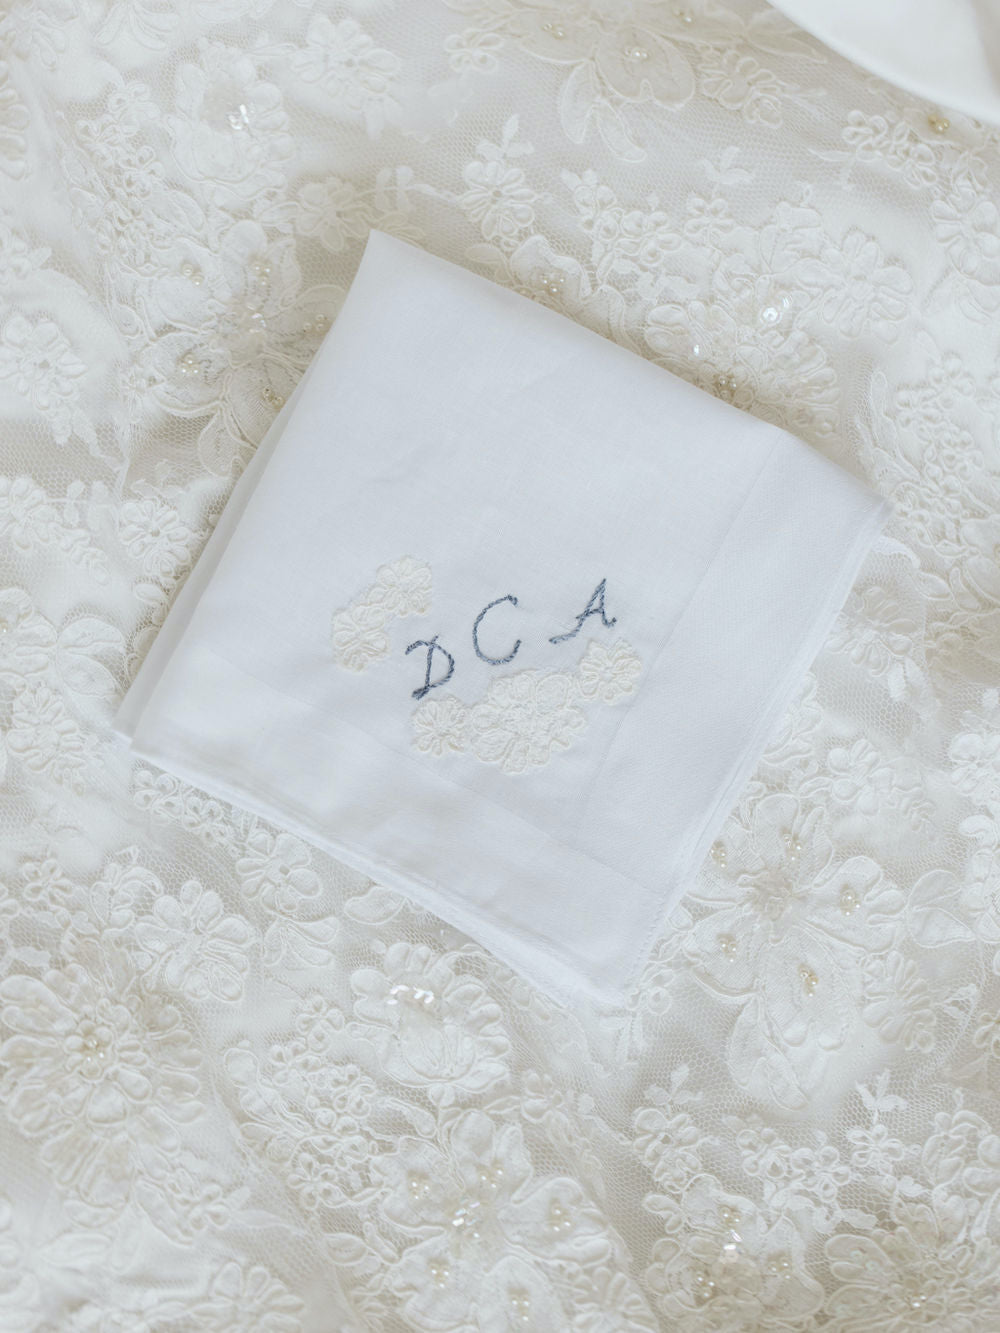 wedding handkerchief made from mother's wedding dress with embroidered monogram by expert heirloom designer The Garter Girl